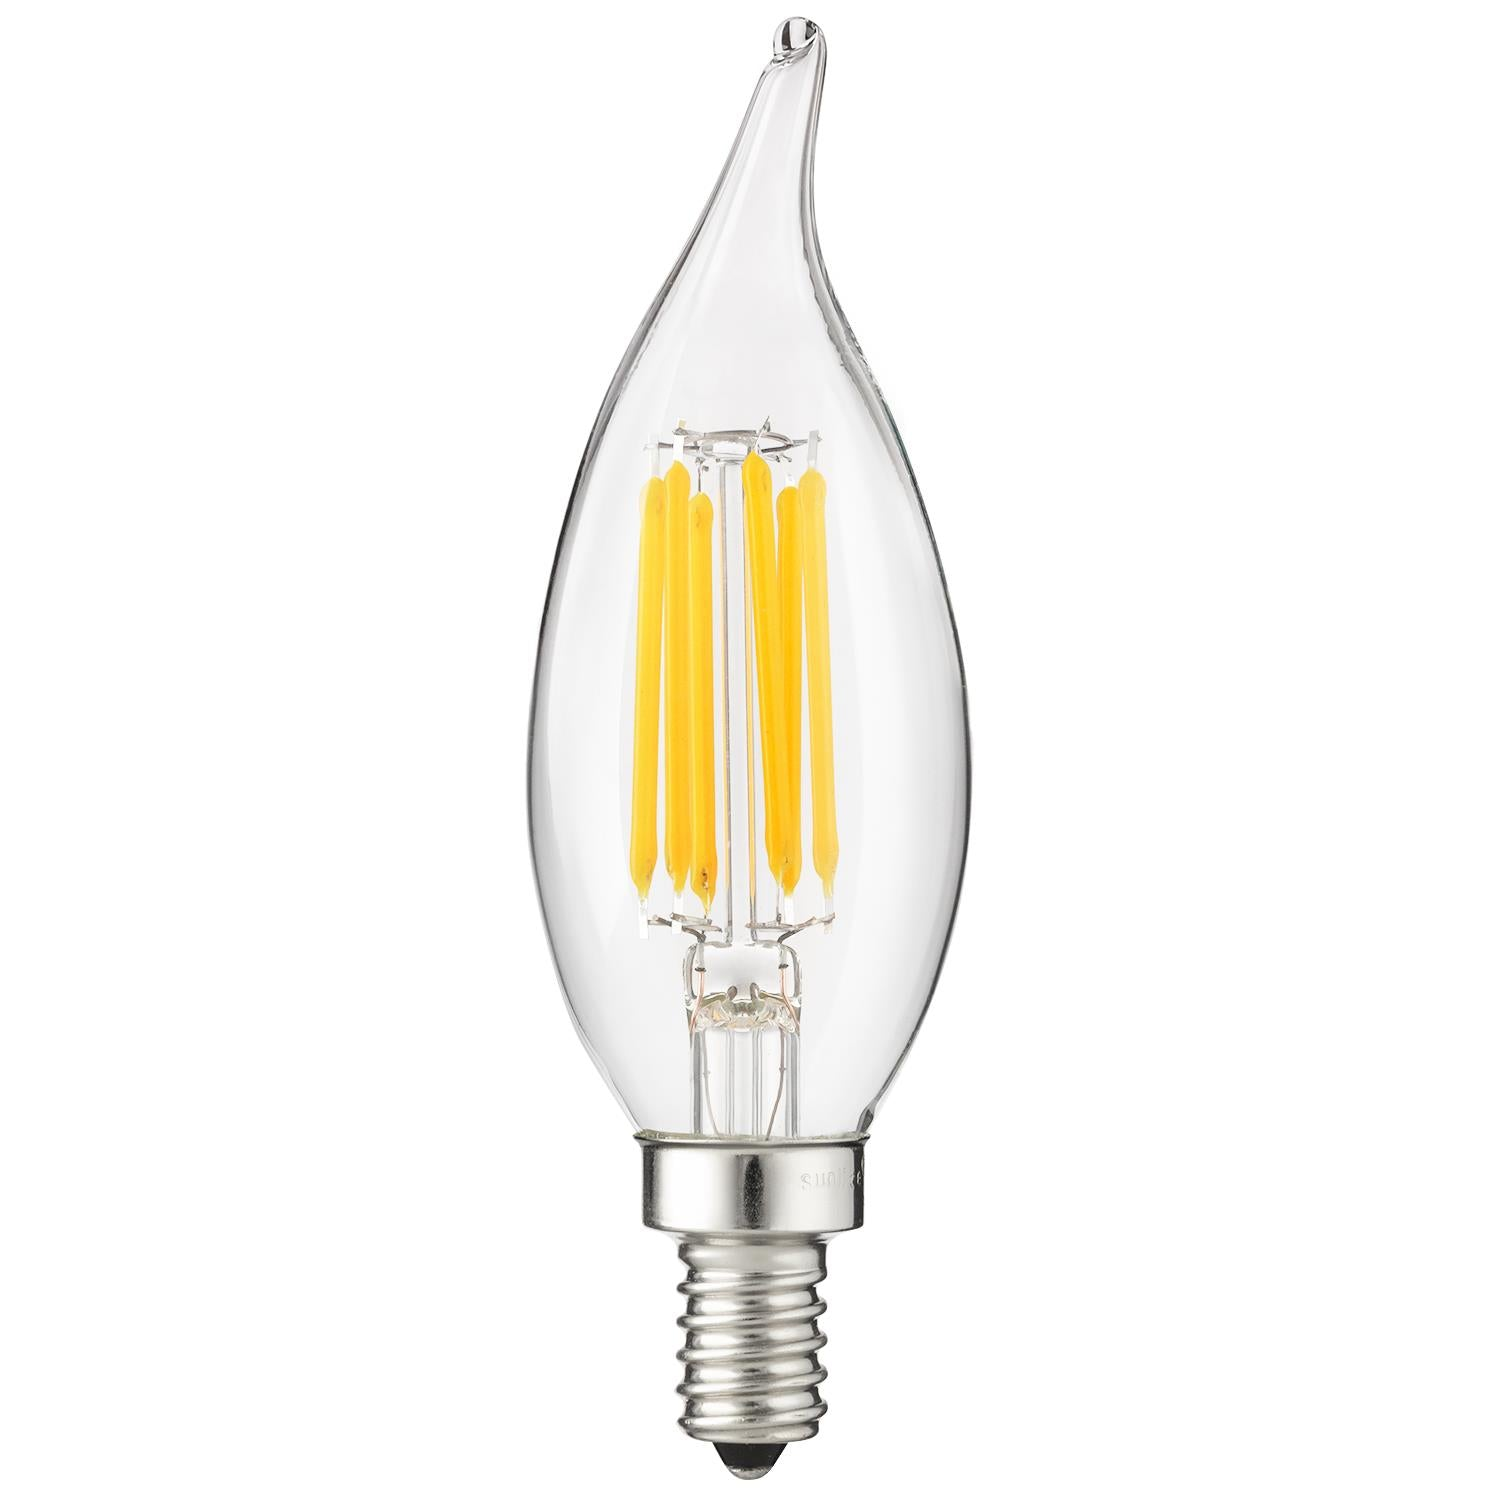 Sunlite 81105-SU 6 Watt Flame Tip Lamp Candelabra (E12) Base Super White 5000K